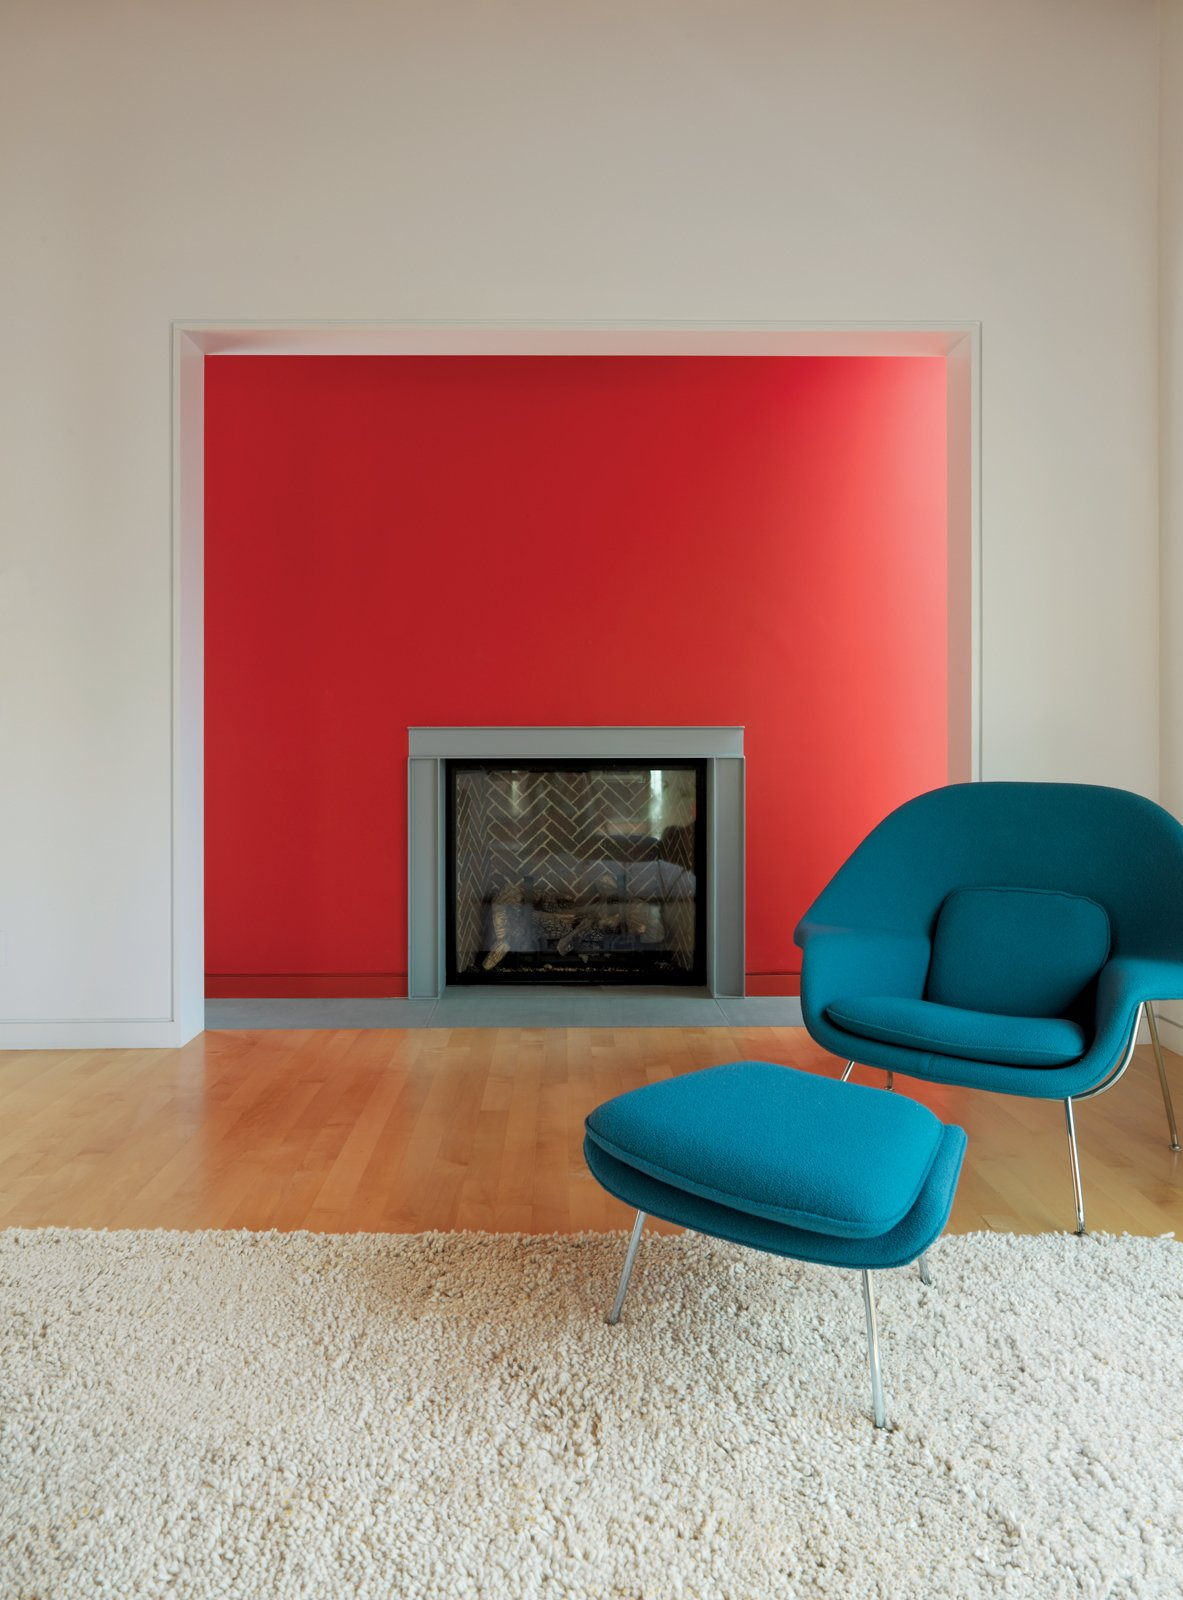 In the living room, Fashandi enjoys lounging in the Saarinen Womb chair by Knoll near the fireplace. The red wall is flanked by thin windows, causing it to glow in the sunlight. Tagged: Living Room, Standard Layout Fireplace, Light Hardwood Floor, Rug Floor, and Chair.  Photo 14 of 16 in Family Matters